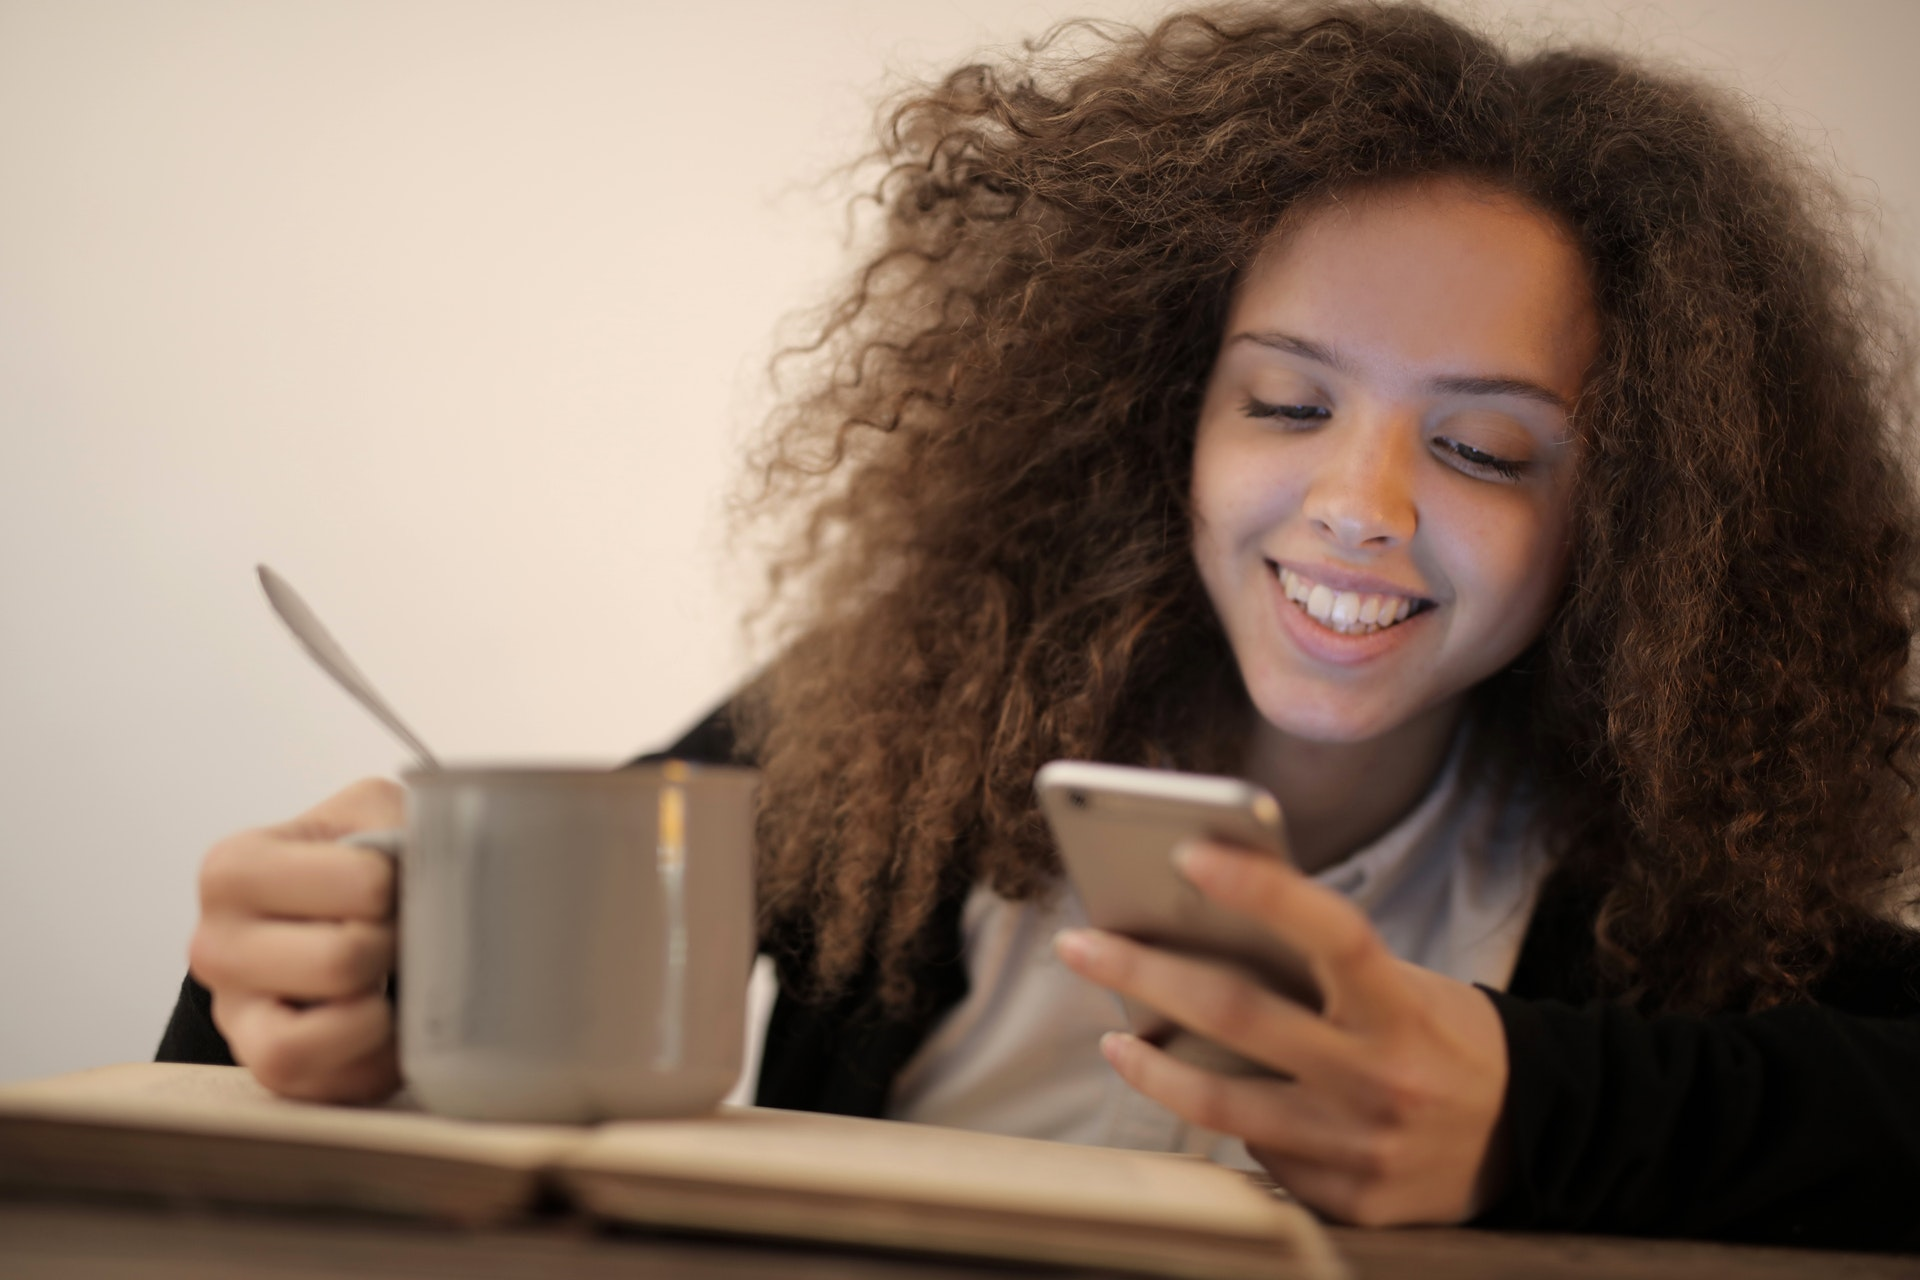 happy woman using mobile app with a cup on her hand